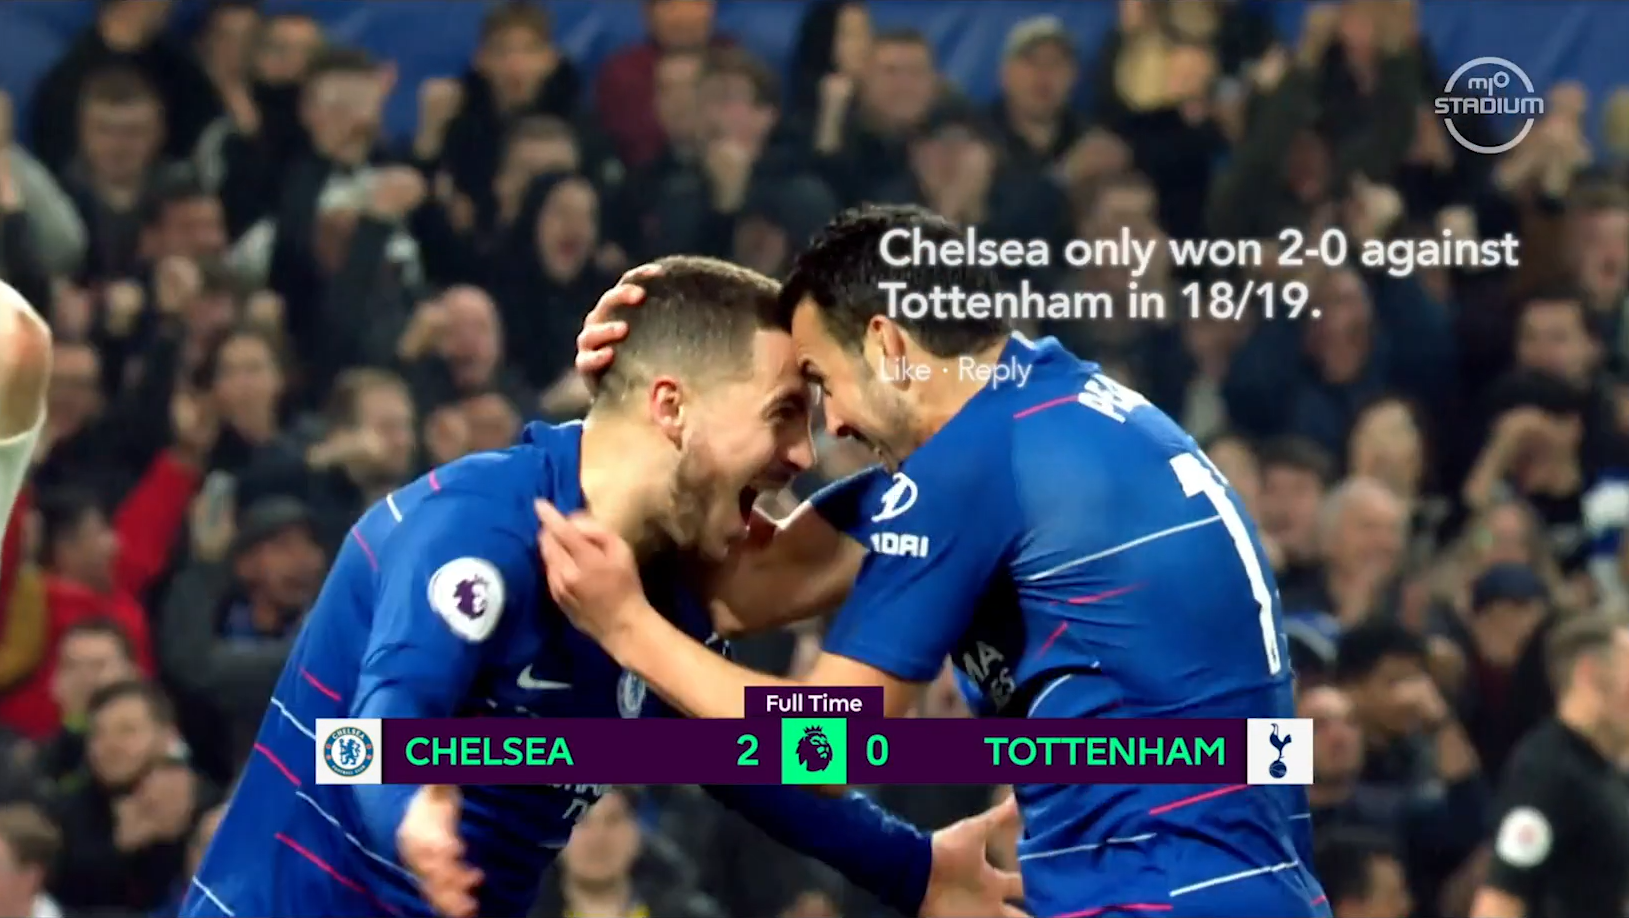 Two Chelsea FC players celebrating with caption 'Chelsea only won 2-0 against Tottenham in 18/19'